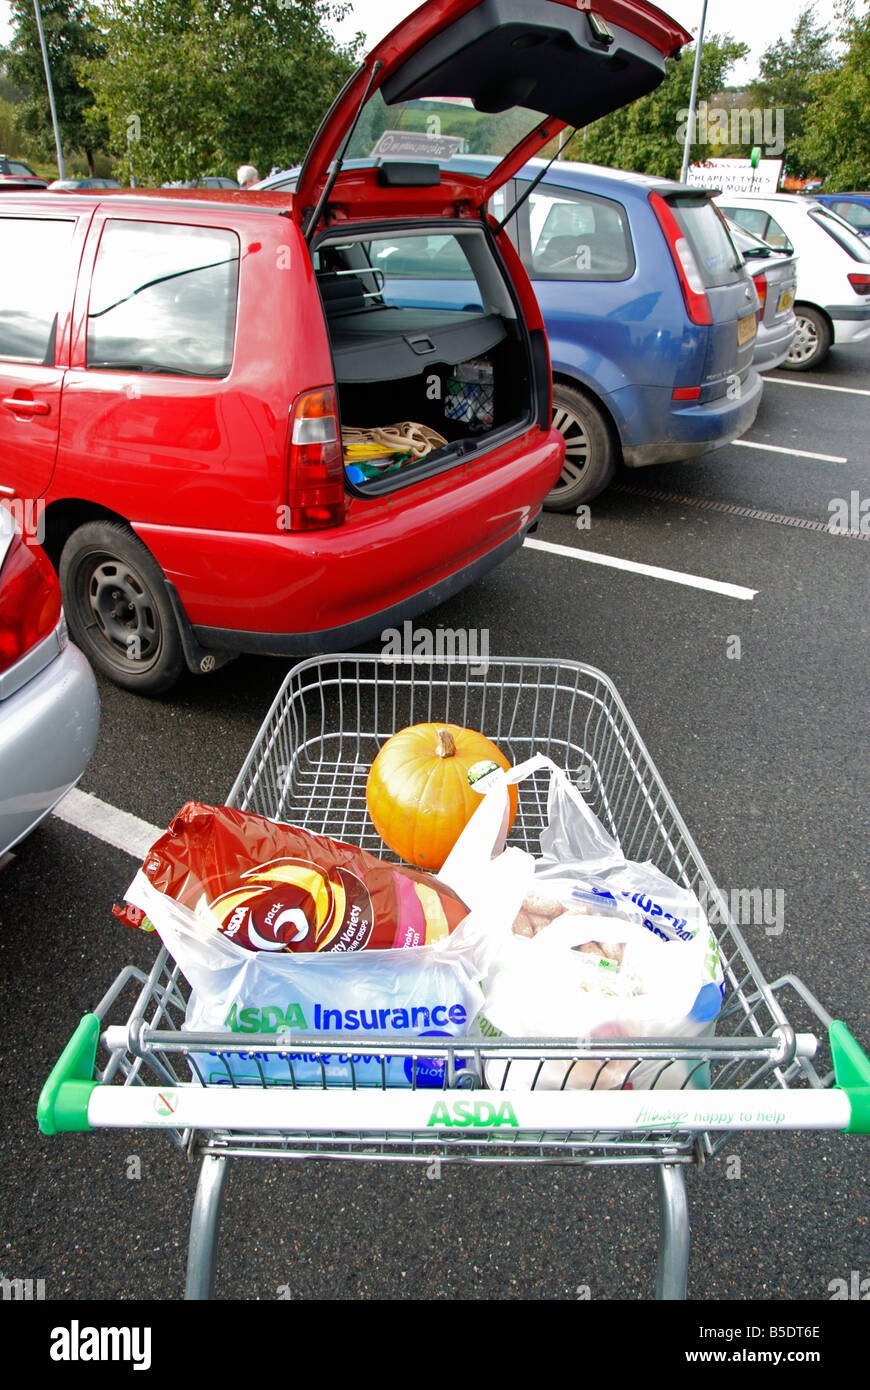 a trolley full of shopping about to be loaded into the boot of a car - Stock Image